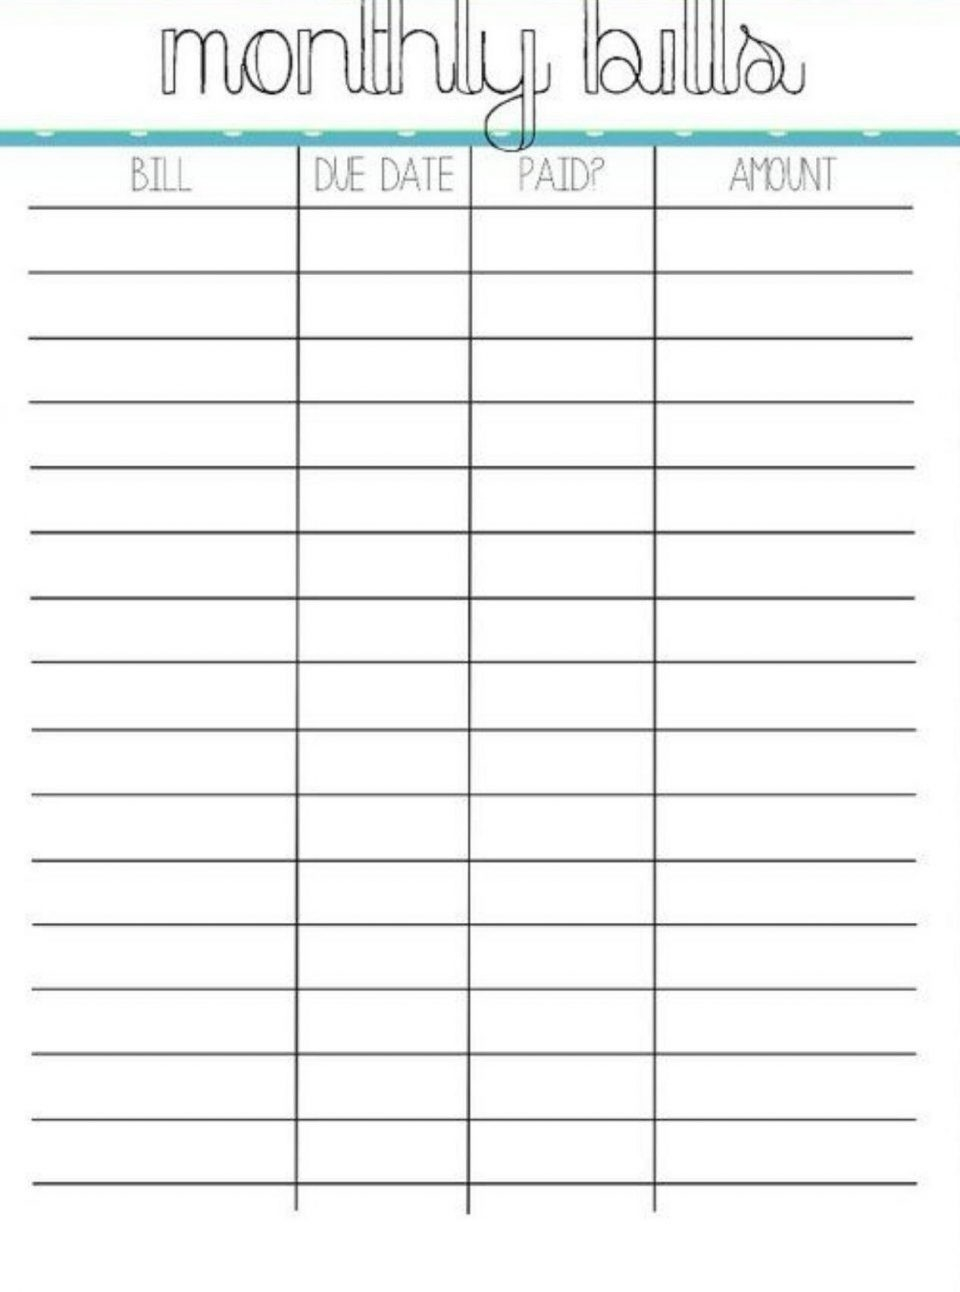 Monthly Bill Sample With Free Printable Organizer Template  Monthly Bill Payment Worksheet Printable